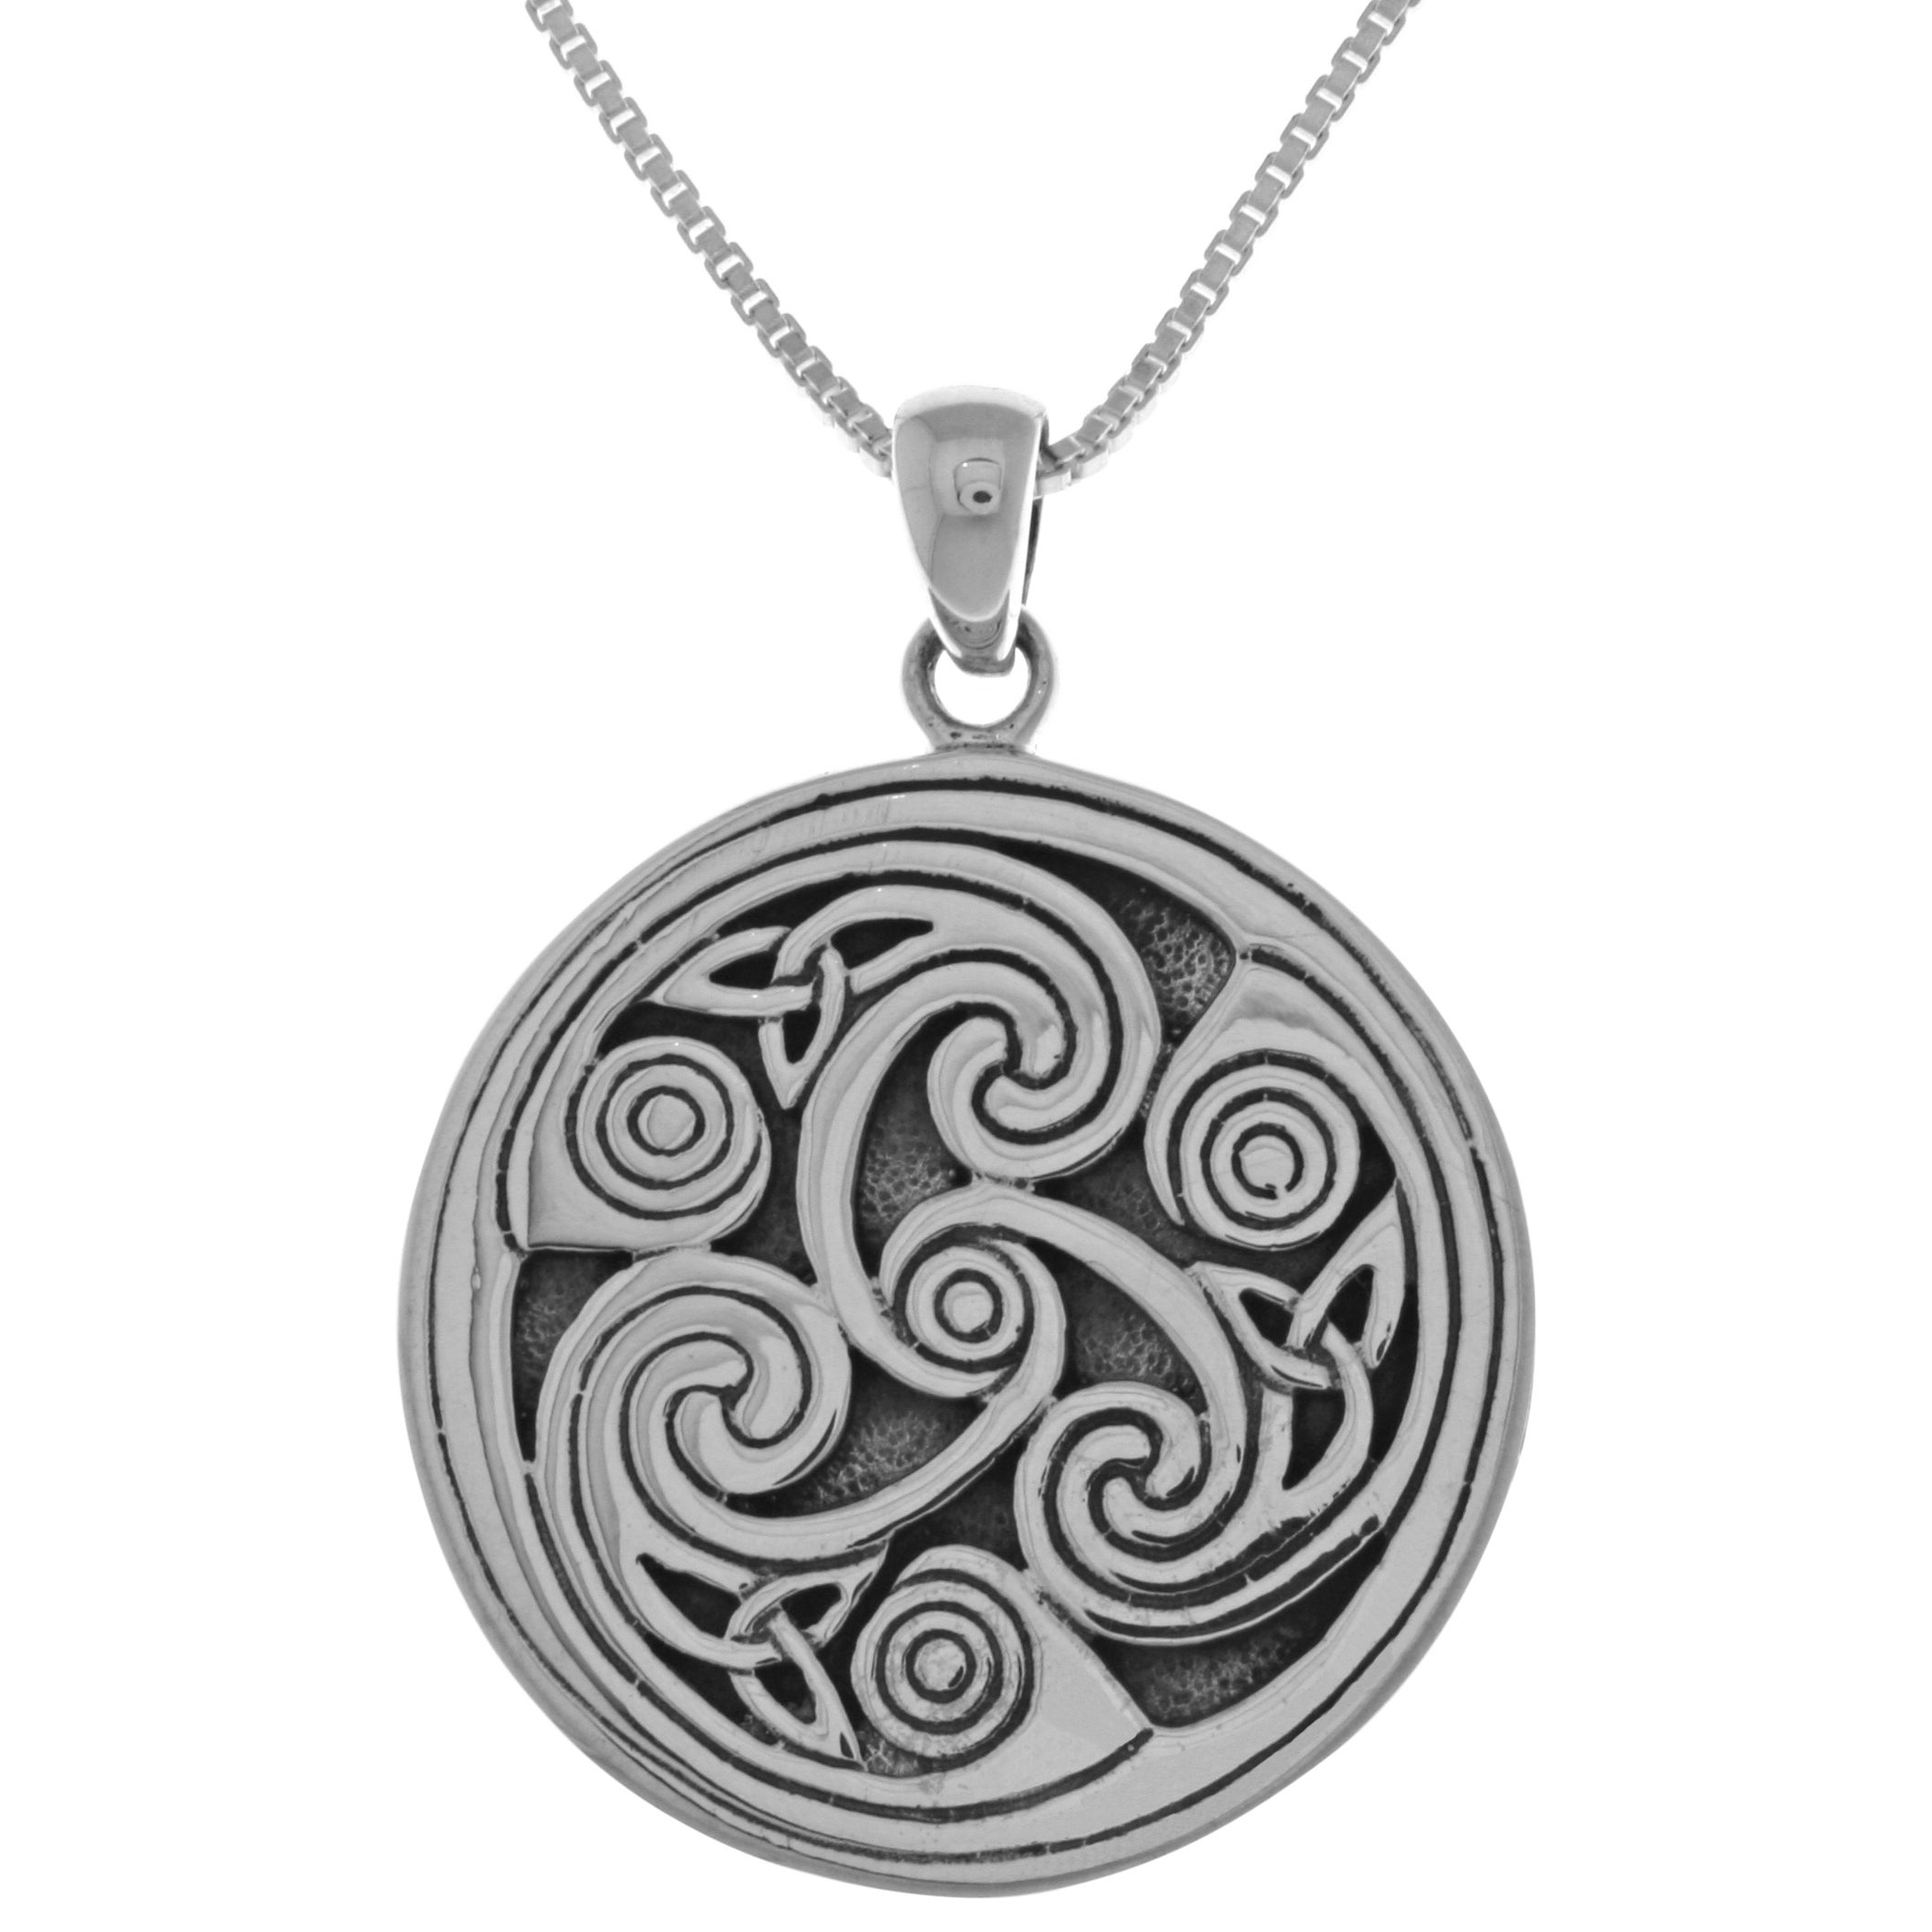 pin celtic ceramic or triskelion wicca pendant necklece triskele